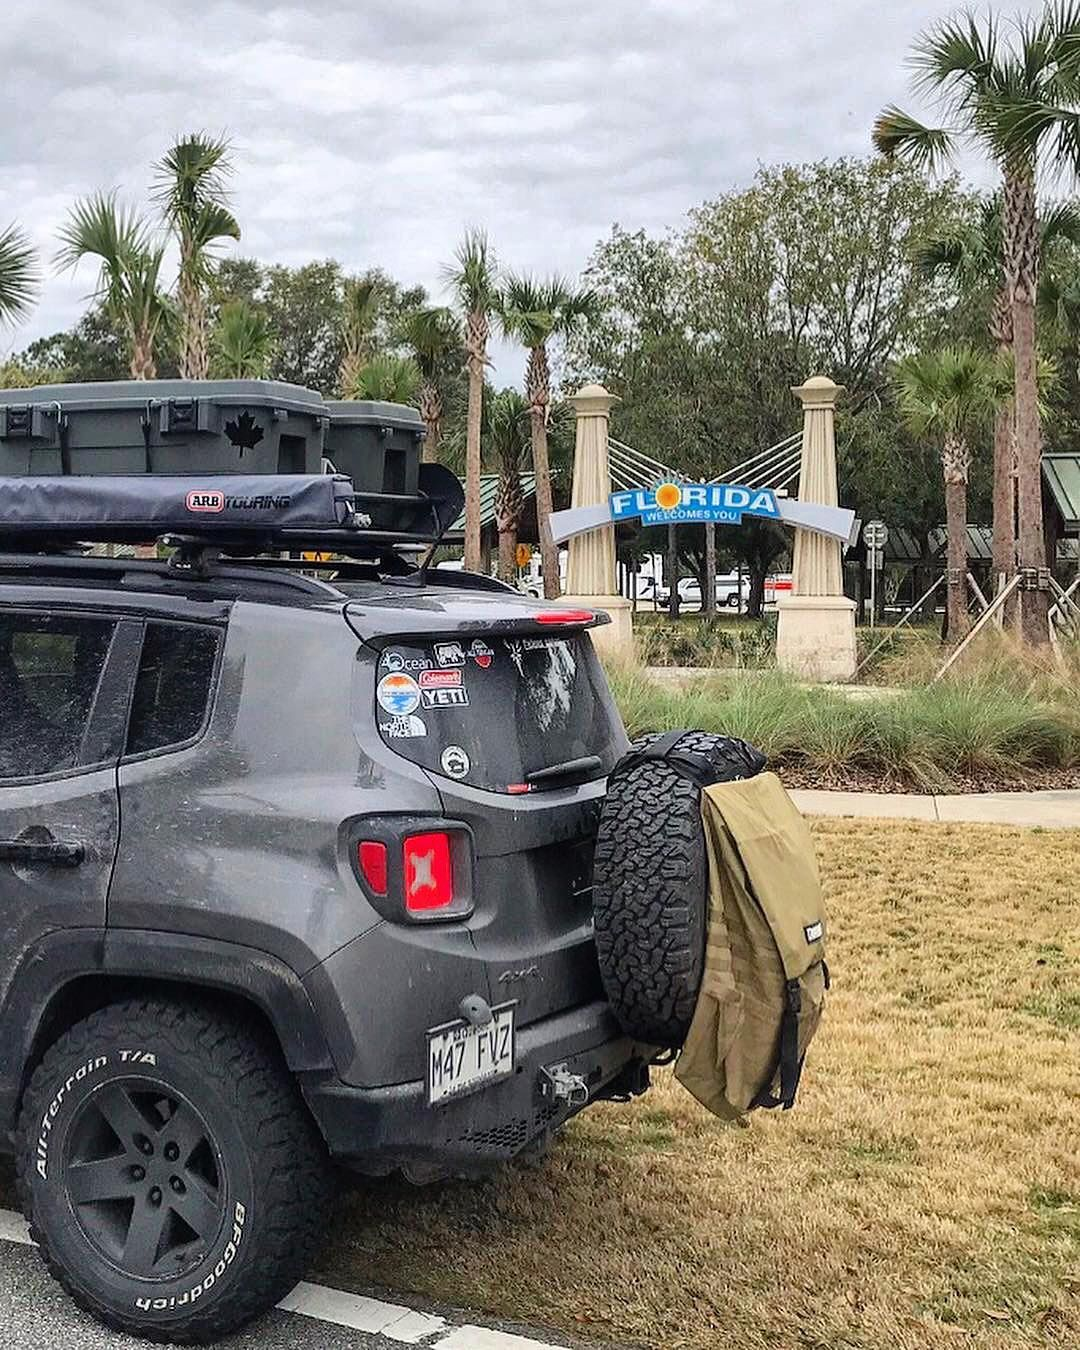 Jeep Renegade On Instagram From Canada Down To Florida America Welcomes You Repost S7even Overland With Repo Jeep Renegade Jeep Renegade Trailhawk Jeep